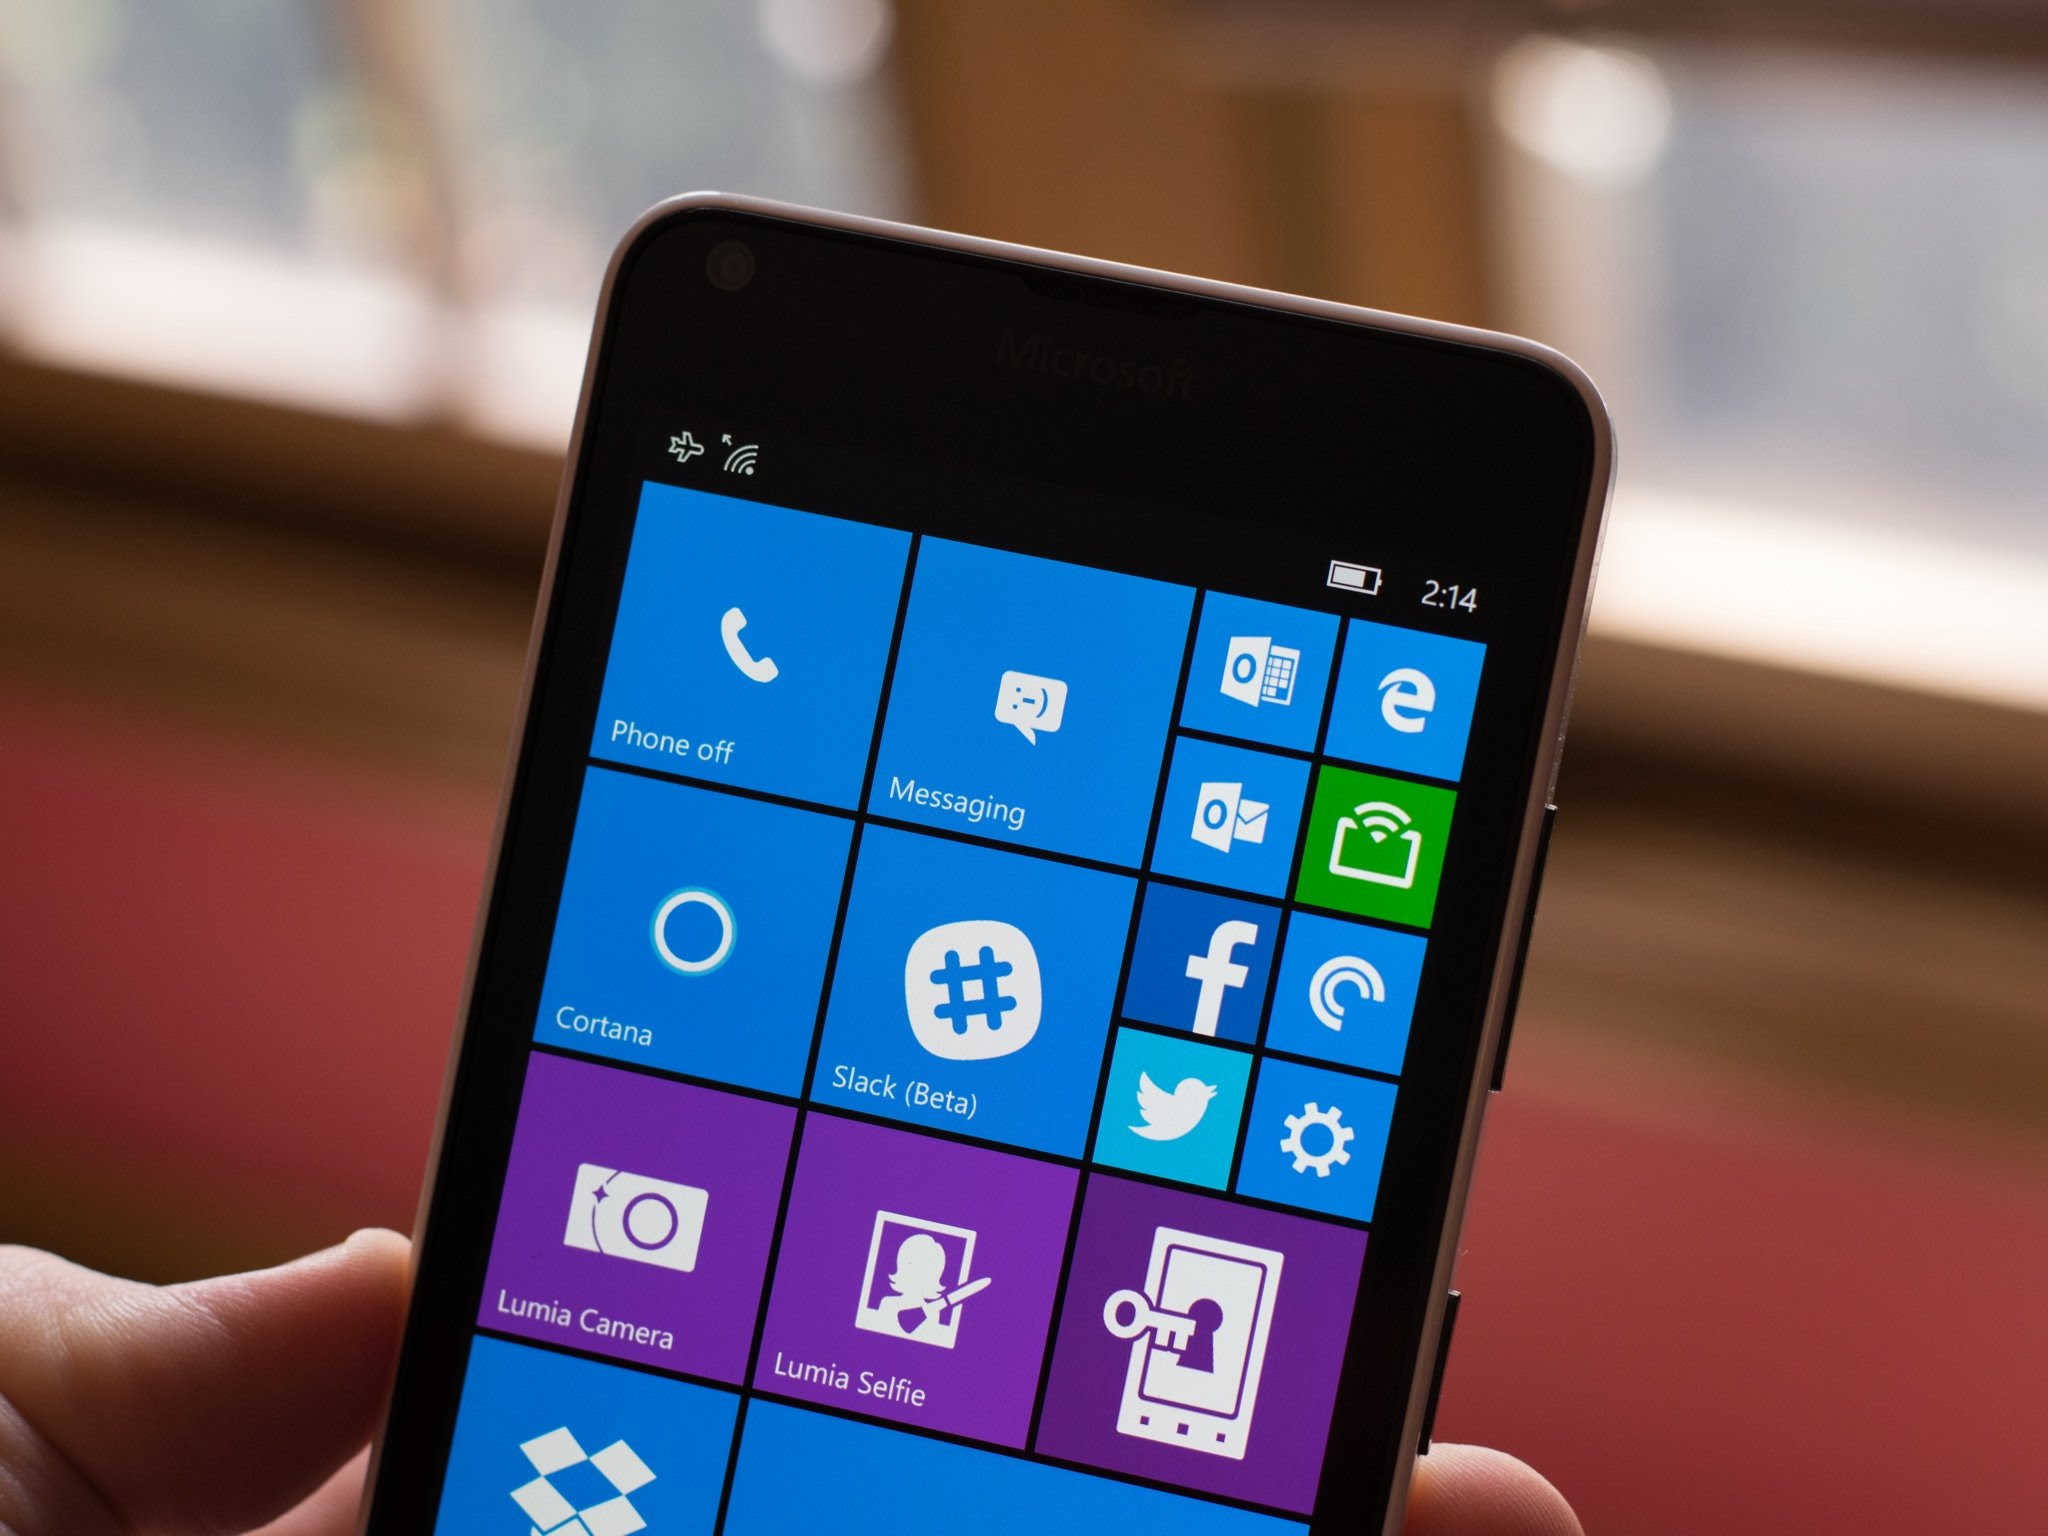 Microsoft currently testing Windows 10 Mobile build 10547